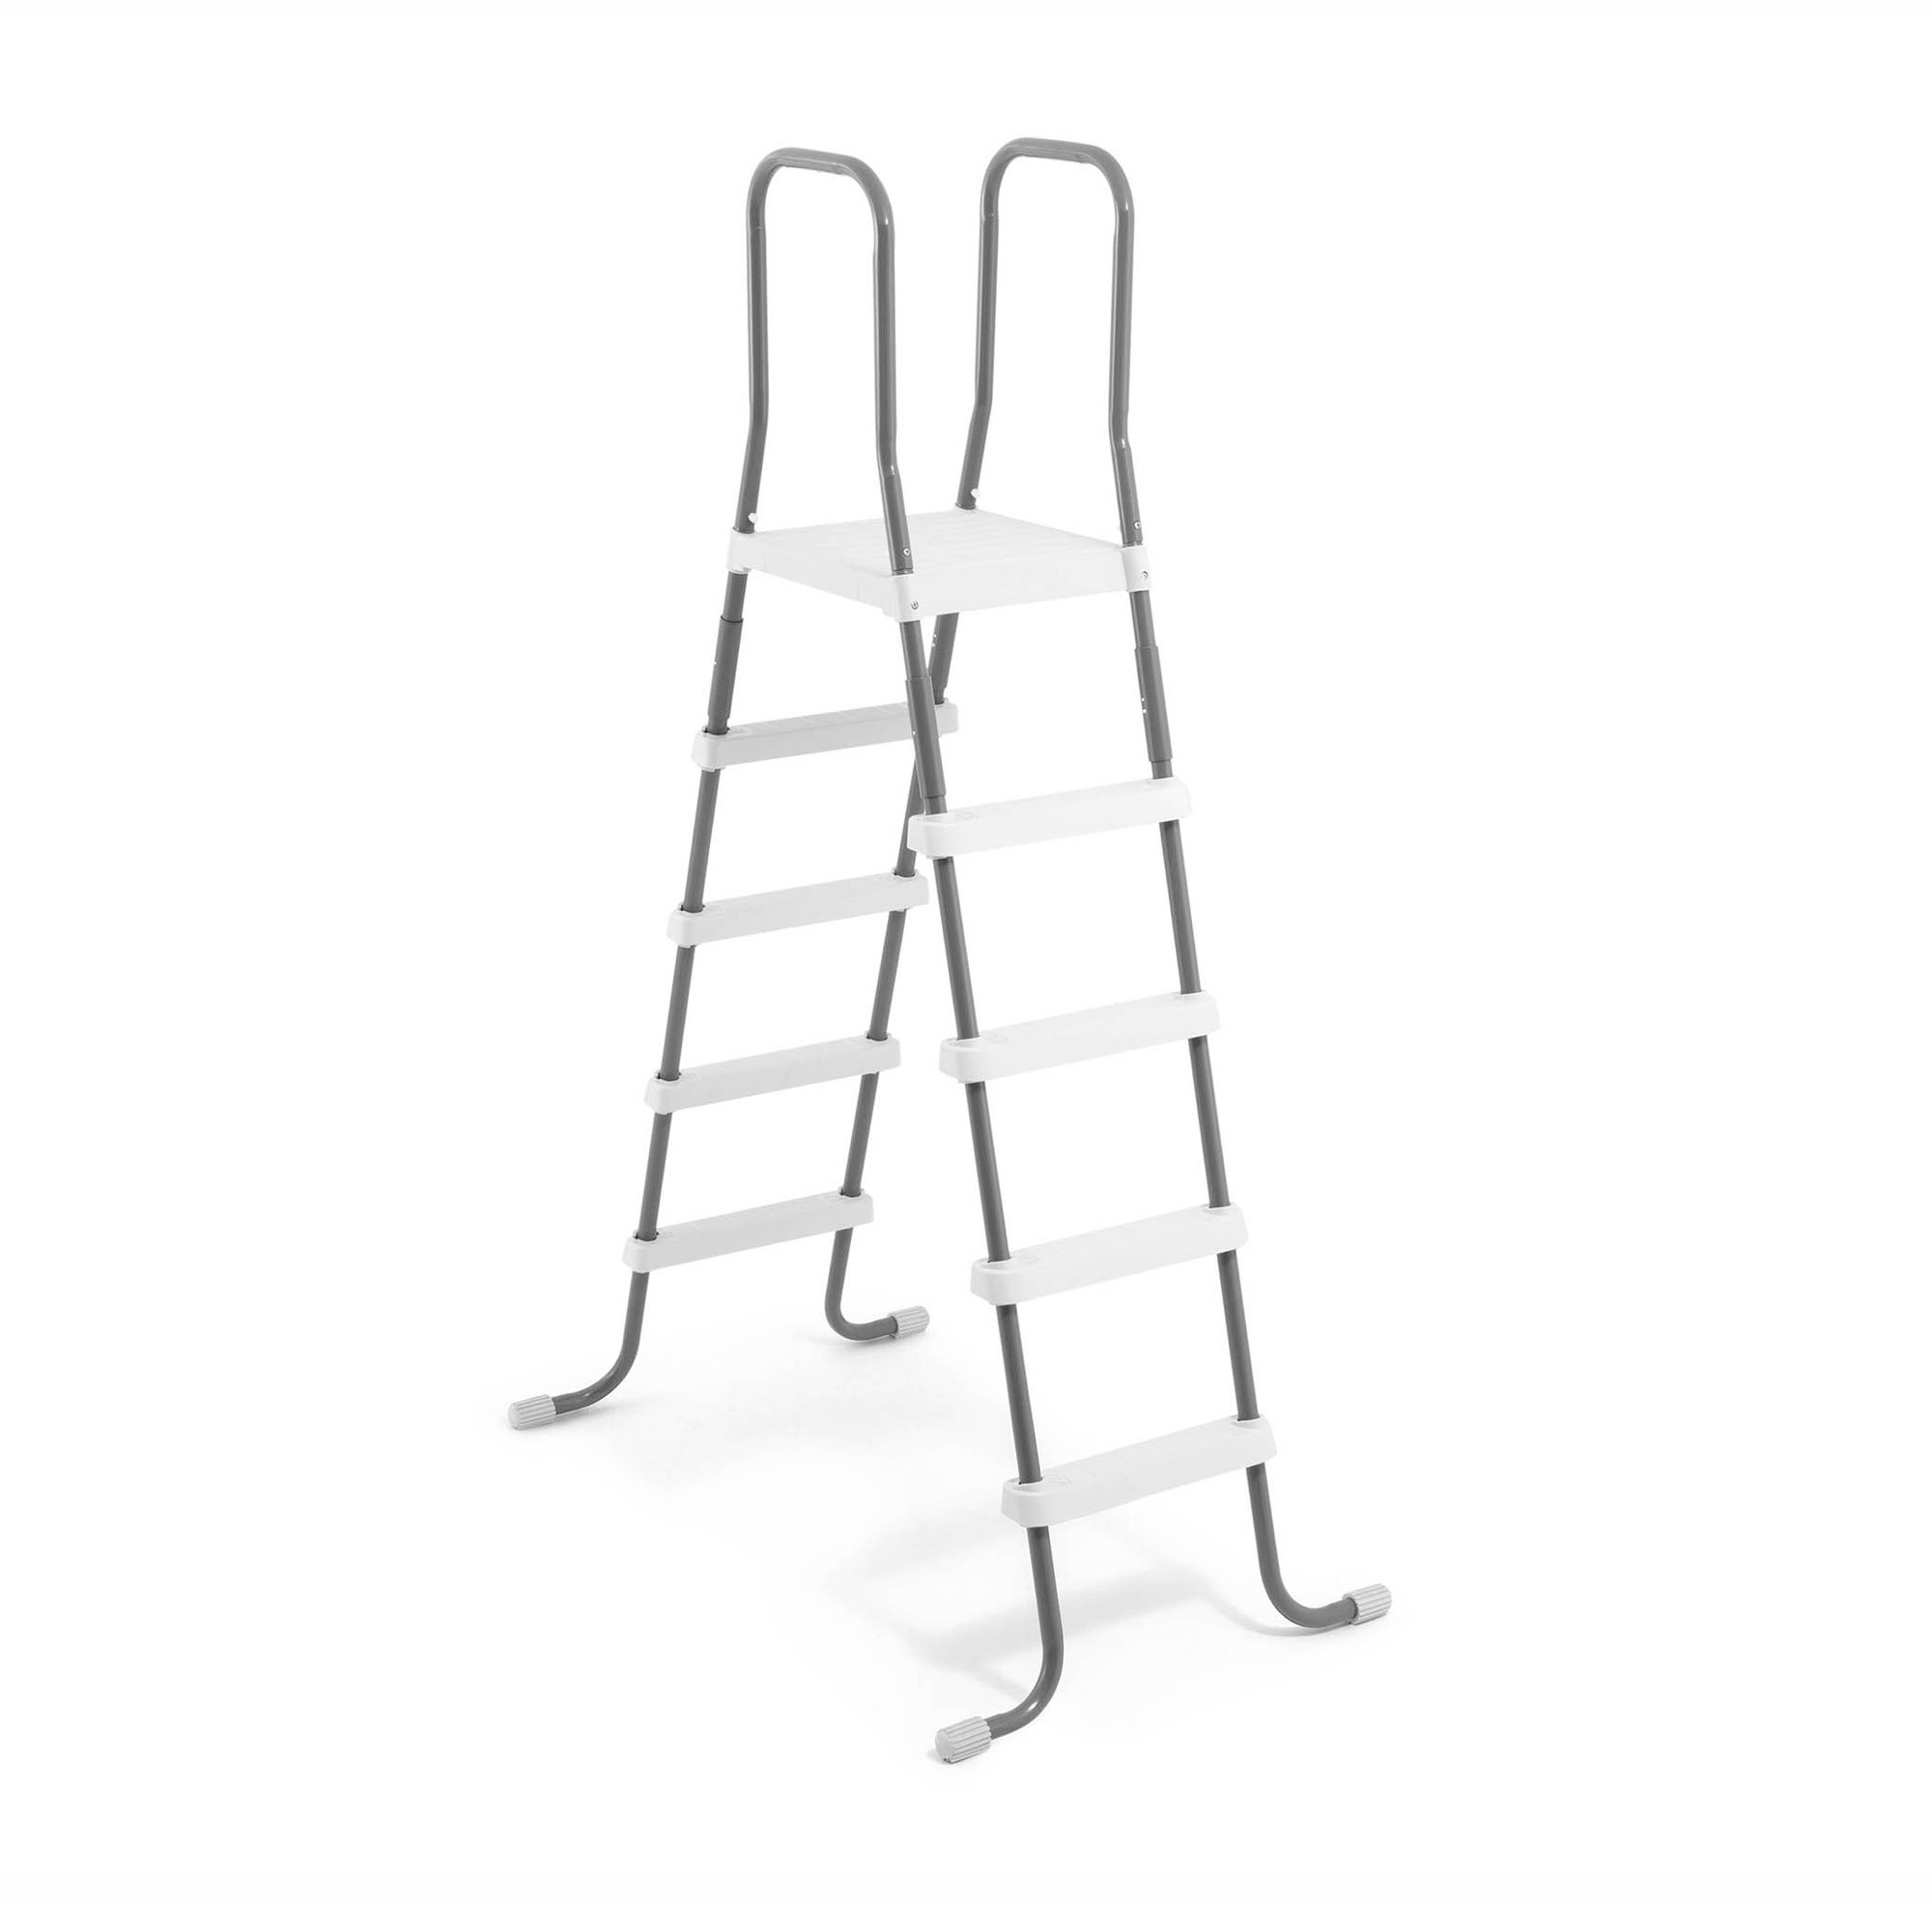 Intex Steel Frame Above Ground Swimming Pool Ladder for 52\